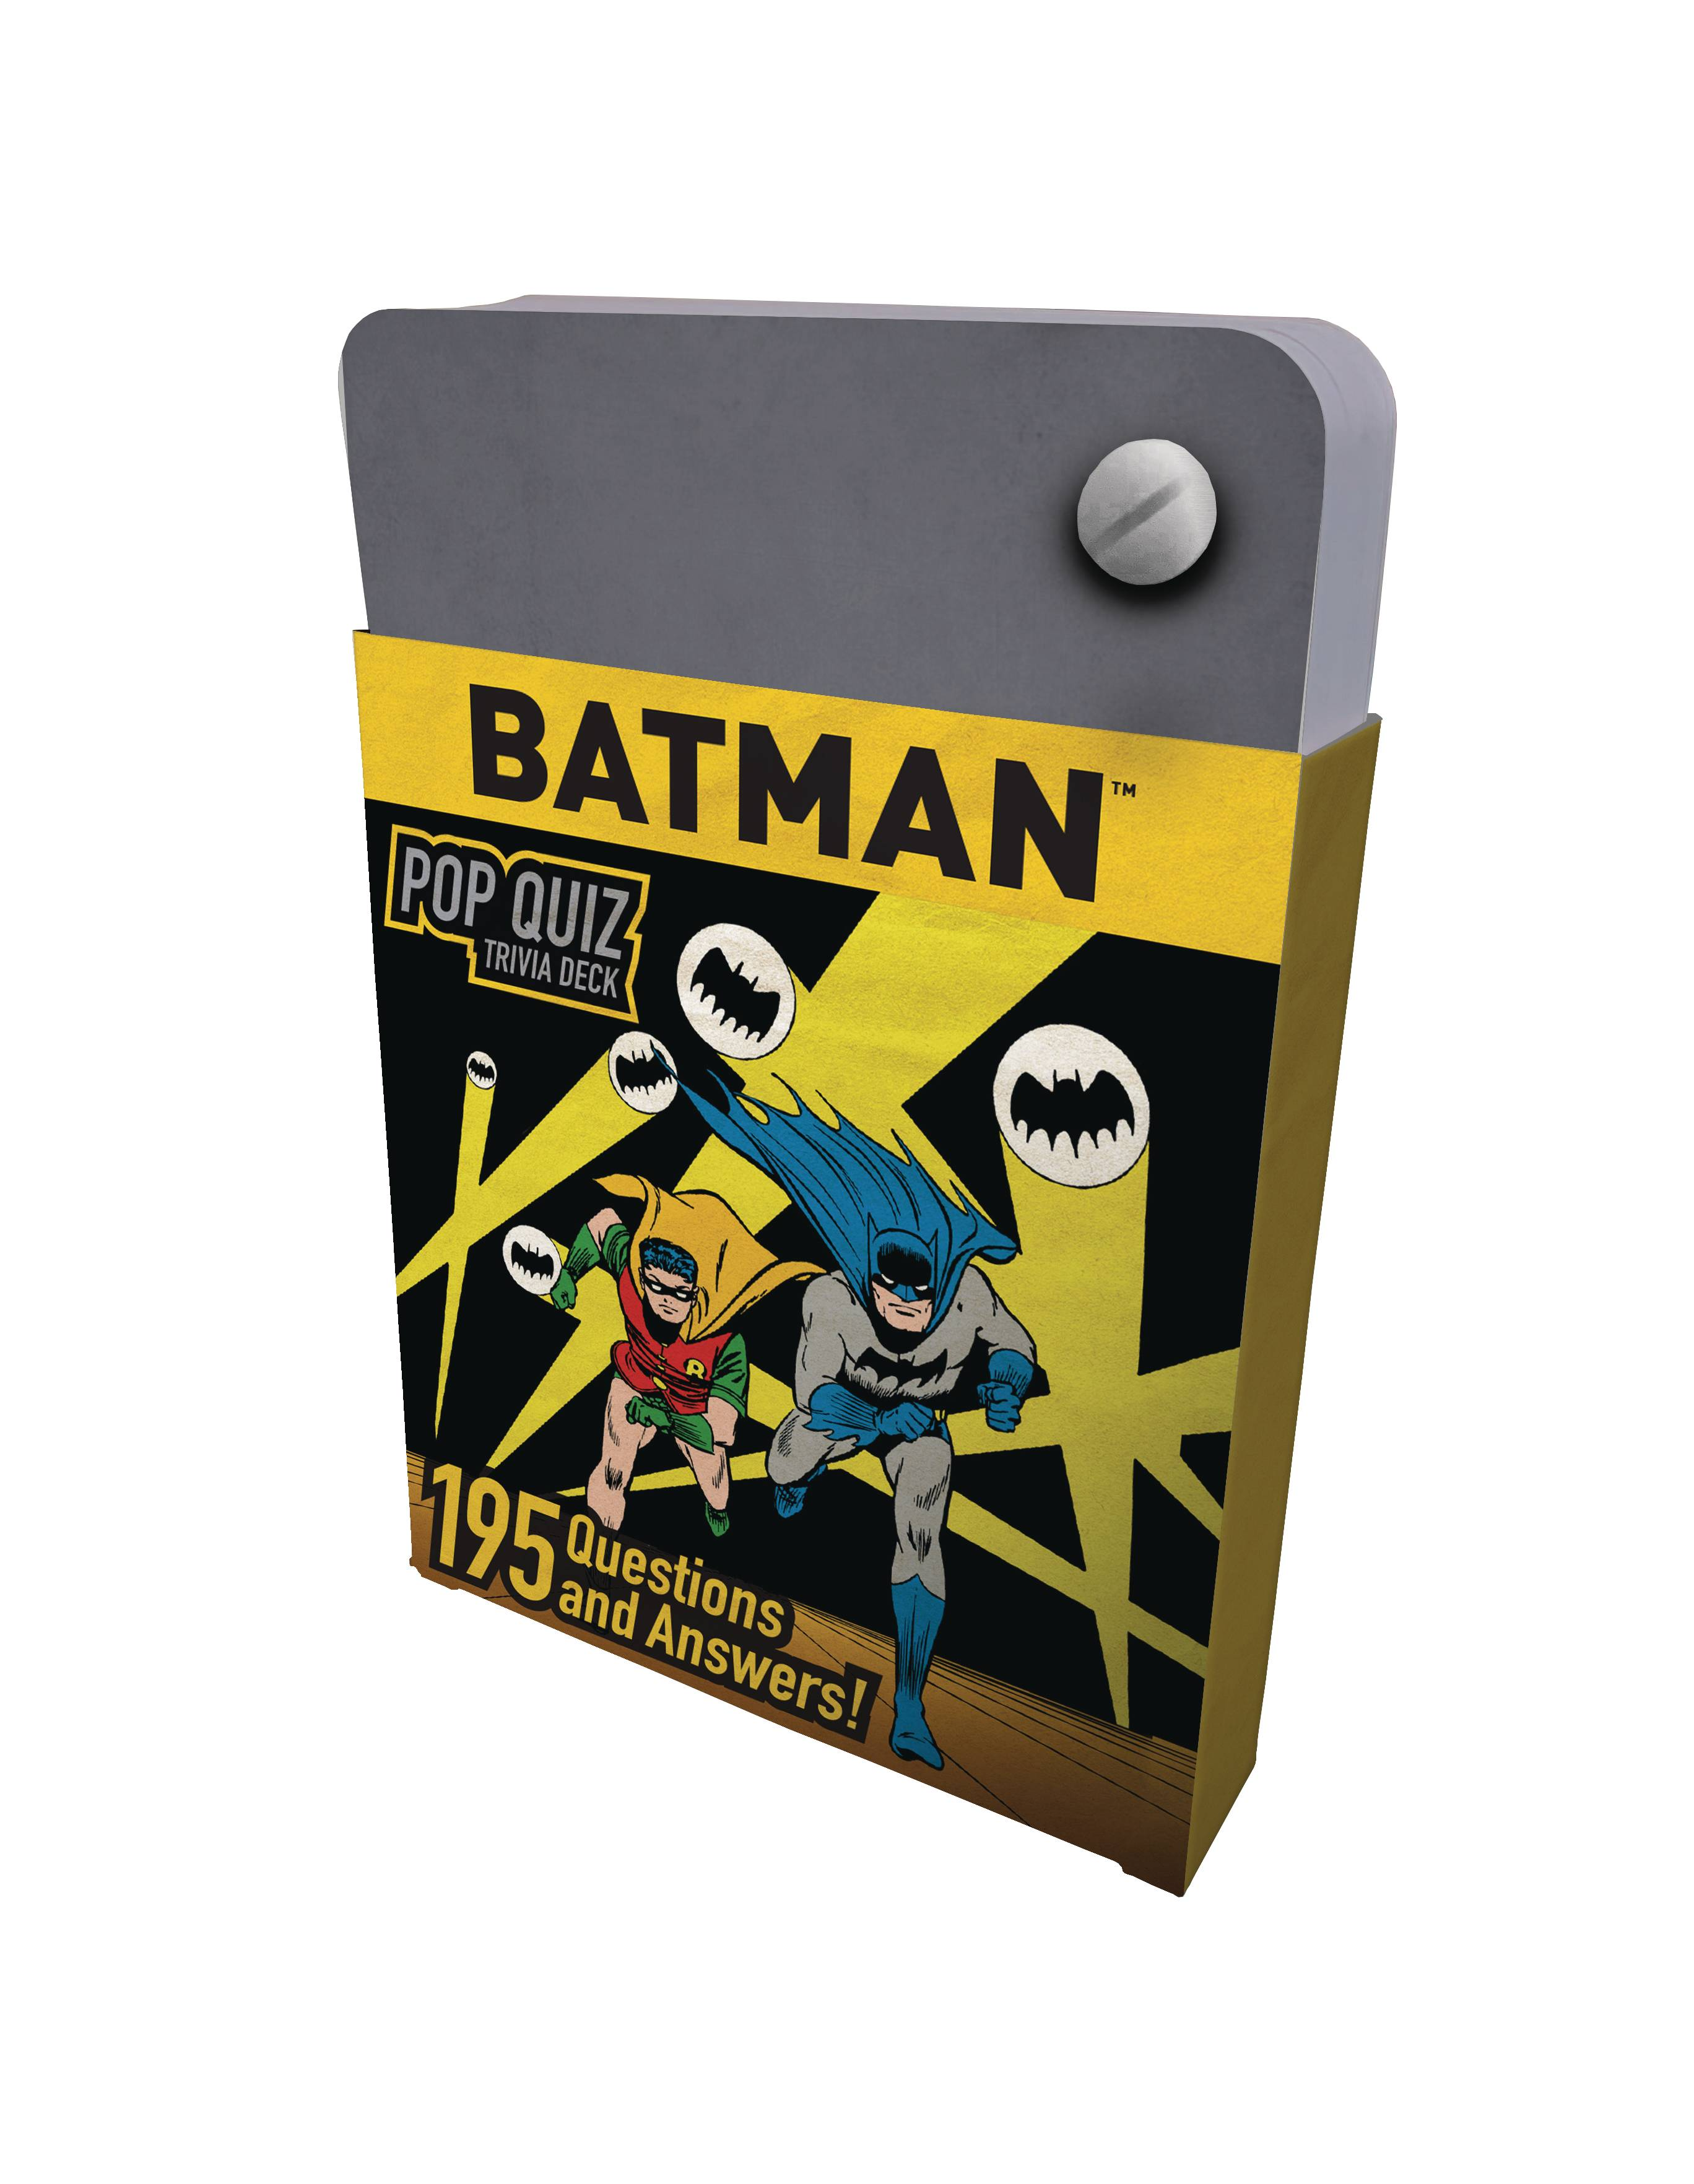 DC COMICS BATMAN POP QUIZ TRIVIA DECK